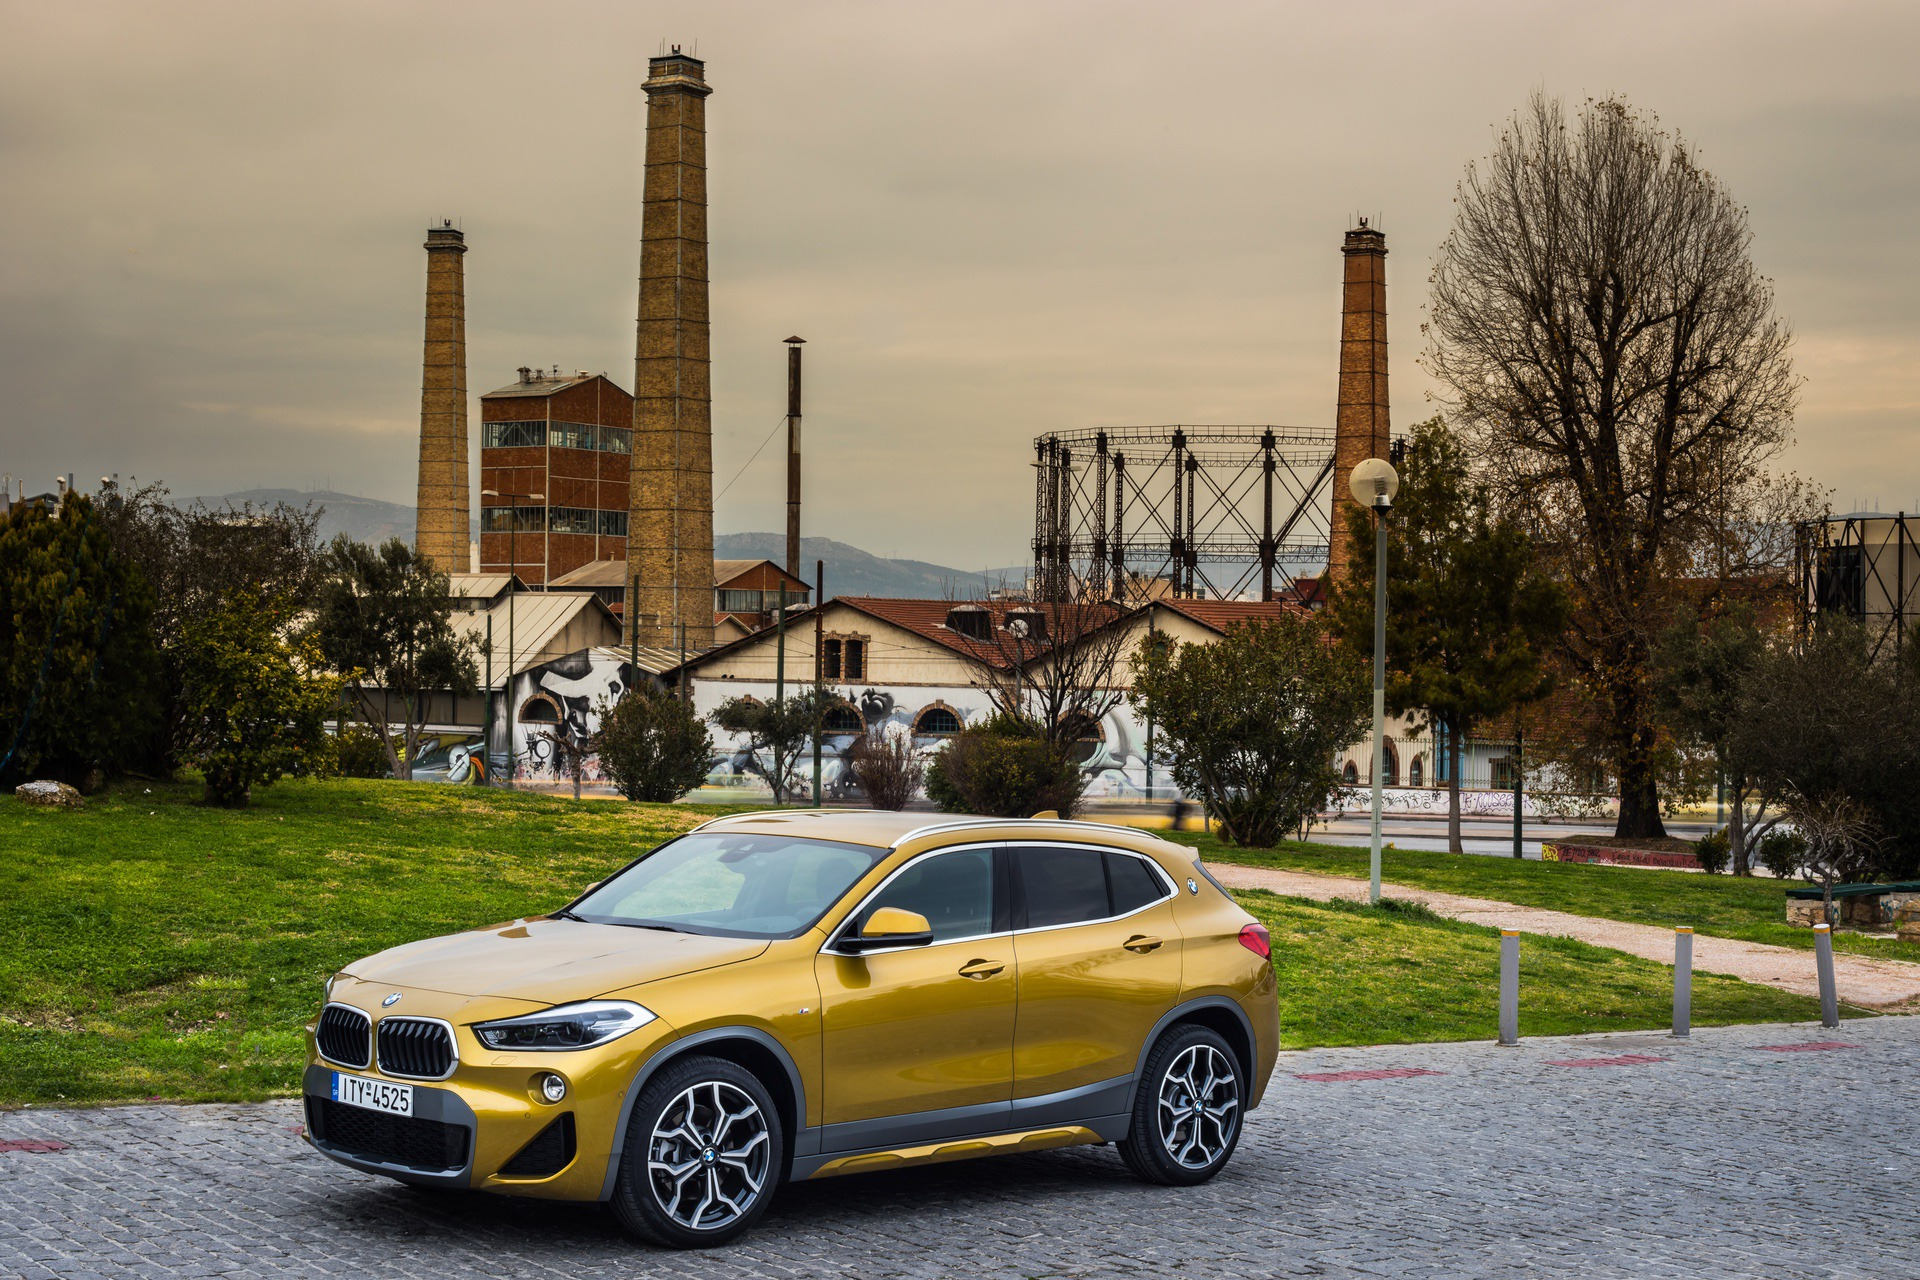 BMW_X2_Greek_presskit_0048